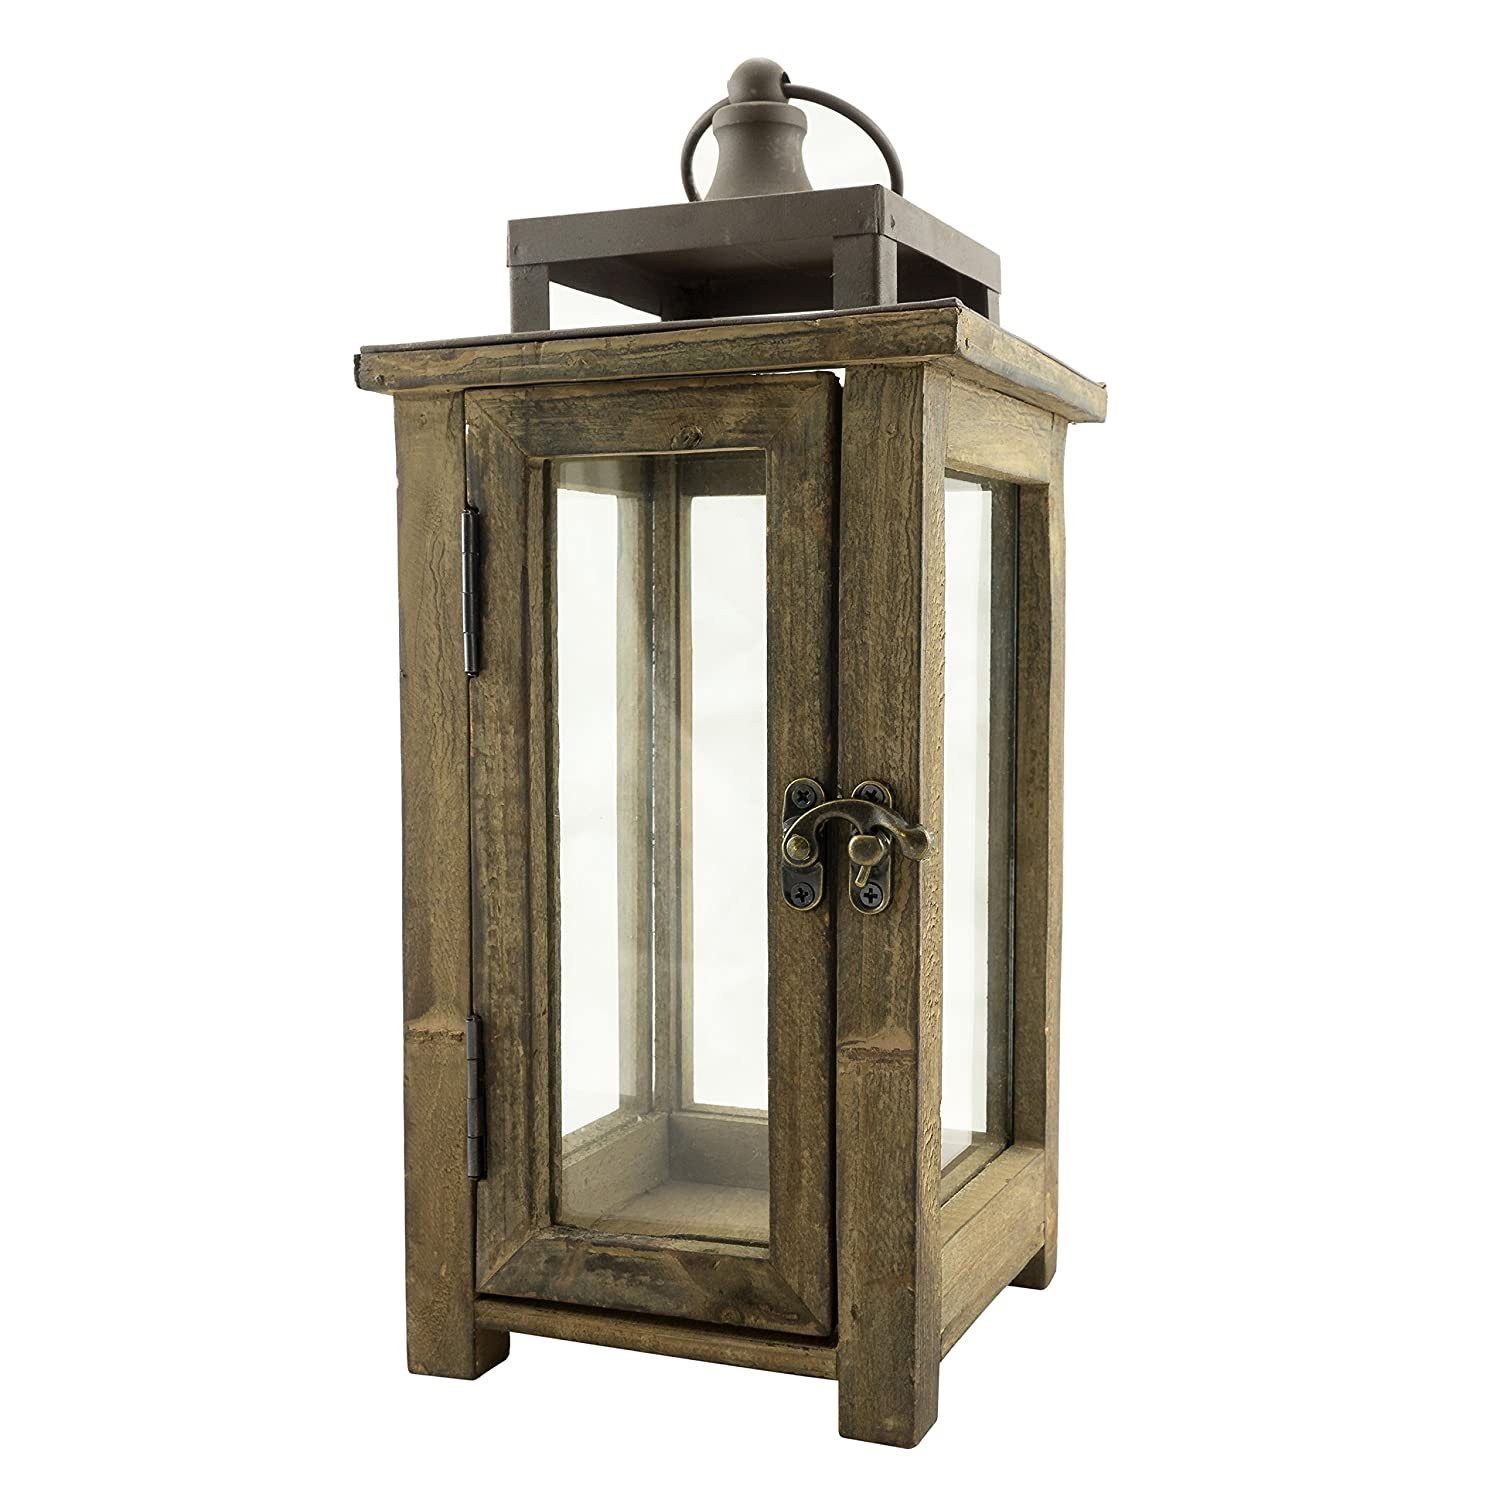 Stonebriar Decorative Wooden Candle Lantern, Use As Decoration for Birthday Parties, a Rustic Wedding Centerpiece, or Create a Relaxing Spa Setting, For Indoor or Outdoor Use, Small CKK Home Dcor SB-4476A